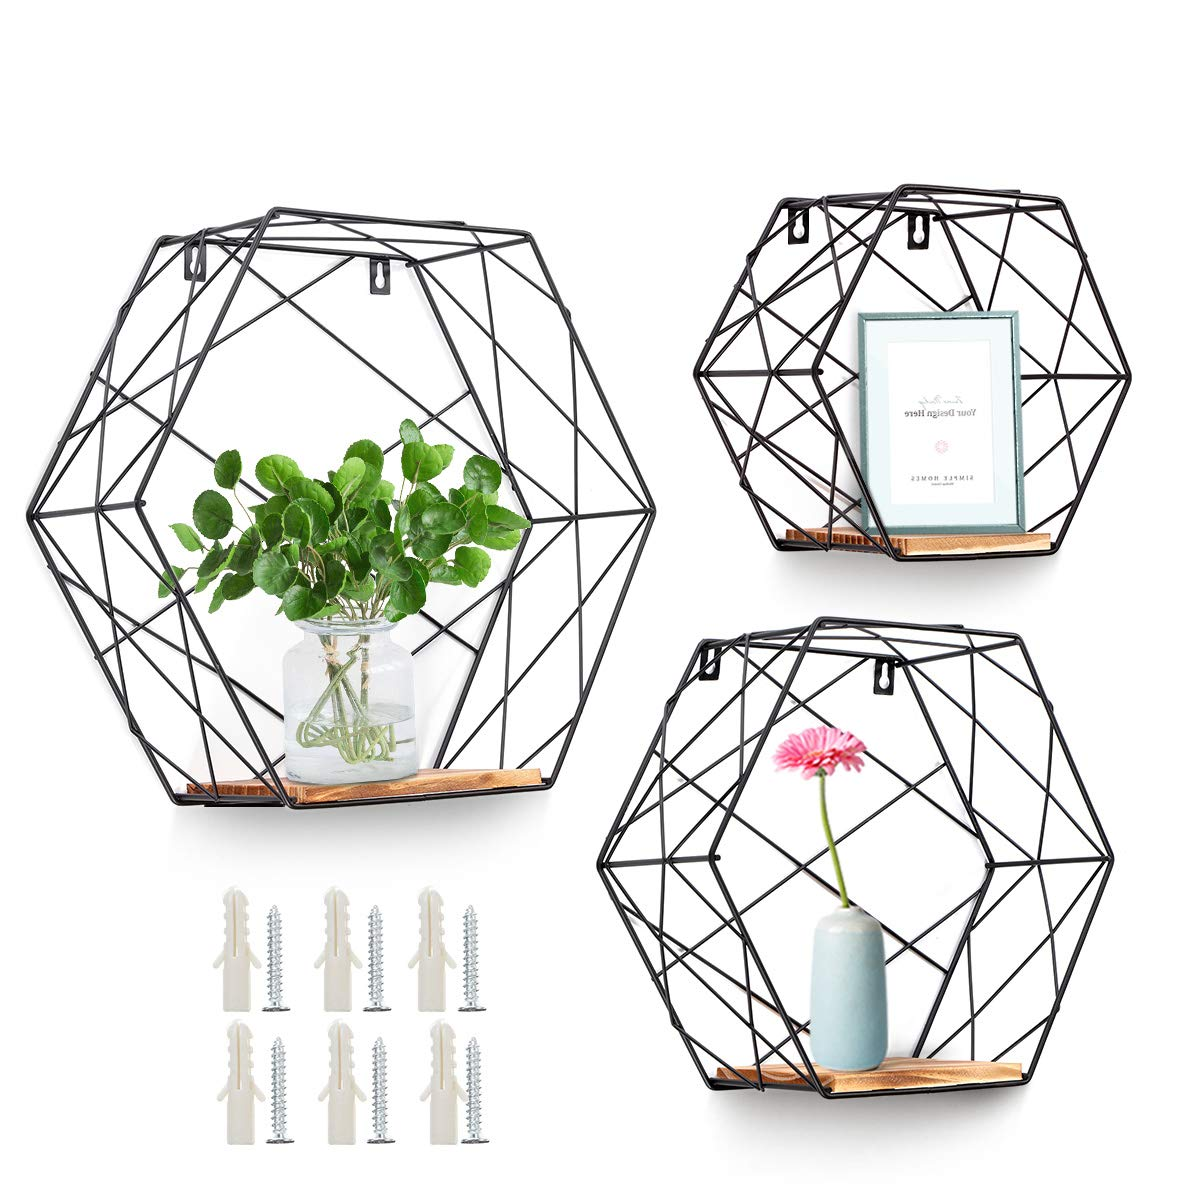 AGSIVO Wall Mounted Hexagonal Floating Shelves Farmhouse Storage Shelves for Wall,Bedroom, Living Room, Bathroom, Kitchen and Office Screws Anchors Included Set of 3,Black